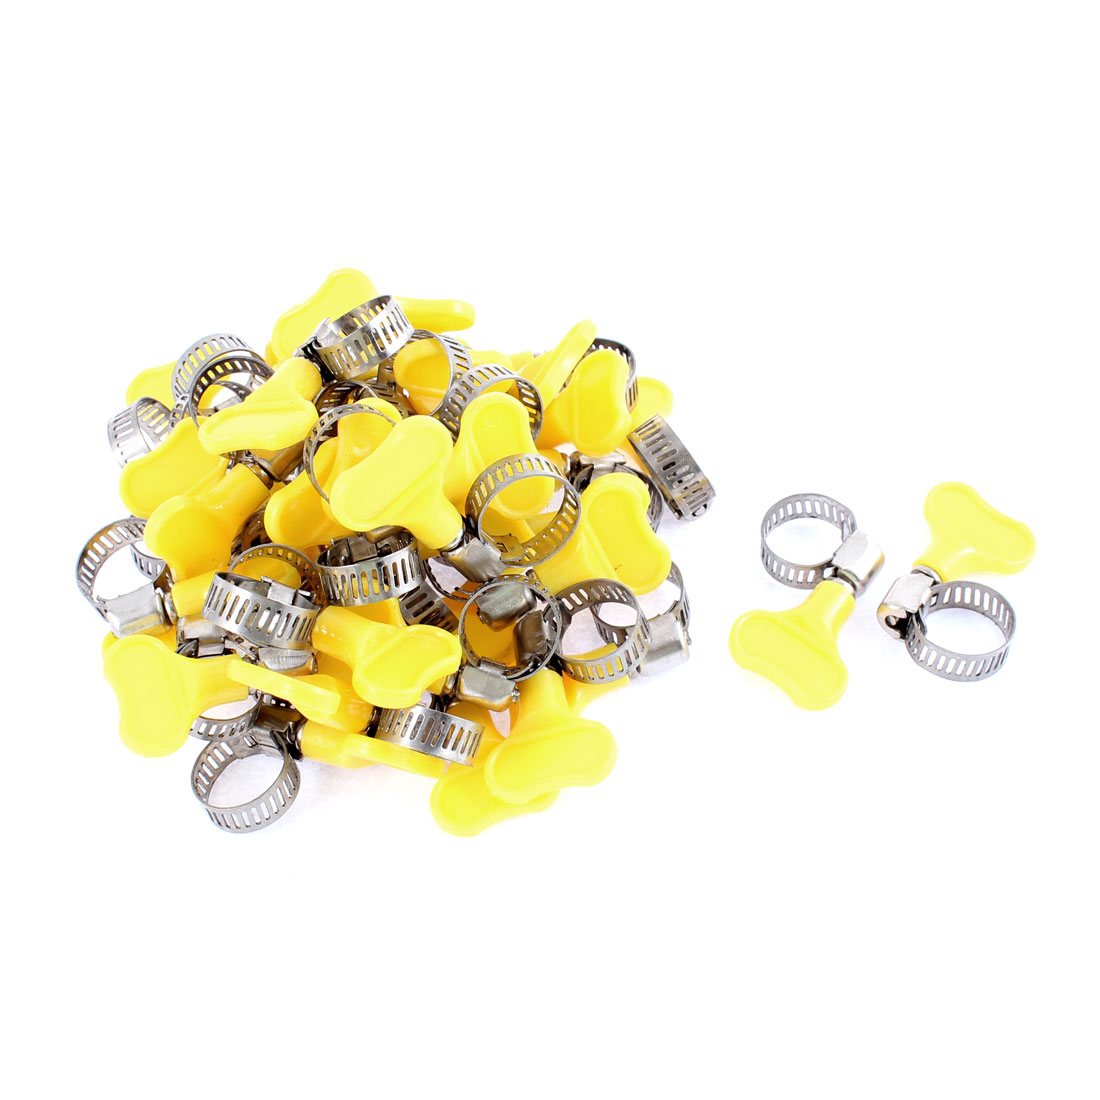 Adjustable 9-16mm Cable Tight Coolant Hose Pipe Clamp 40Pcs